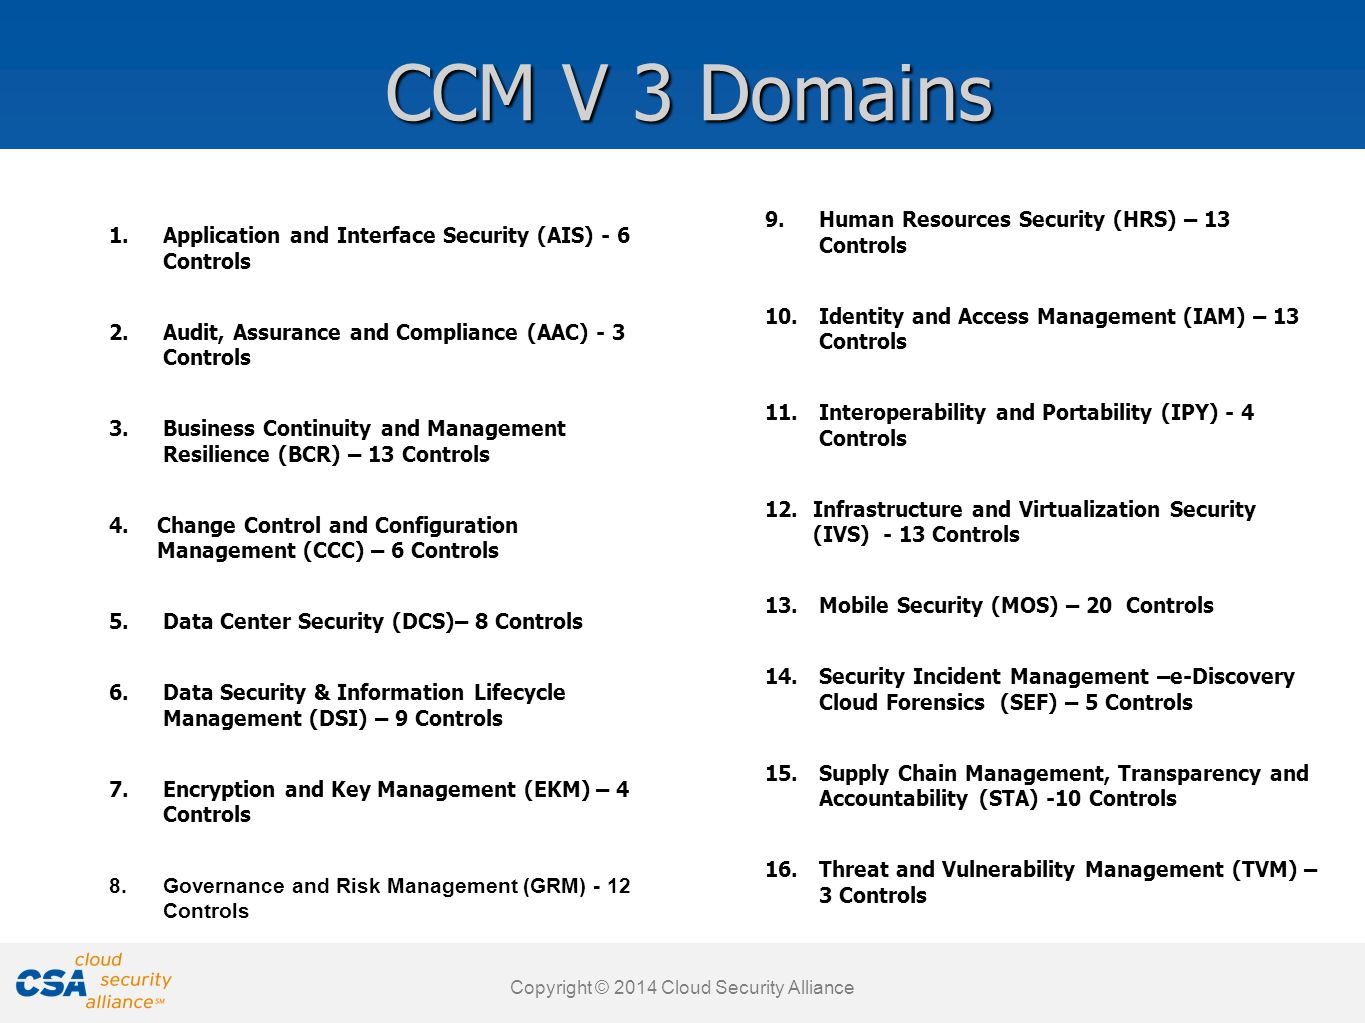 www.cloudsecurityalliance.org Copyright © 2011 Cloud Security Alliance CCM V 3 Domains 1.Application and Interface Security (AIS) - 6 Controls 2.Audit, Assurance and Compliance (AAC) - 3 Controls 3.Business Continuity and Management Resilience (BCR) – 13 Controls 4.Change Control and Configuration Management (CCC) – 6 Controls 5.Data Center Security (DCS)– 8 Controls 6.Data Security & Information Lifecycle Management (DSI) – 9 Controls 7.Encryption and Key Management (EKM) – 4 Controls 8.Governance and Risk Management (GRM) - 12 Controls 9.Human Resources Security (HRS) – 13 Controls 10.Identity and Access Management (IAM) – 13 Controls 11.Interoperability and Portability (IPY) - 4 Controls 12.Infrastructure and Virtualization Security (IVS) - 13 Controls 13.Mobile Security (MOS) – 20 Controls 14.Security Incident Management –e-Discovery Cloud Forensics (SEF) – 5 Controls 15.Supply Chain Management, Transparency and Accountability (STA) -10 Controls 16.Threat and Vulnerability Management (TVM) – 3 Controls Copyright © 2014 Cloud Security Alliance